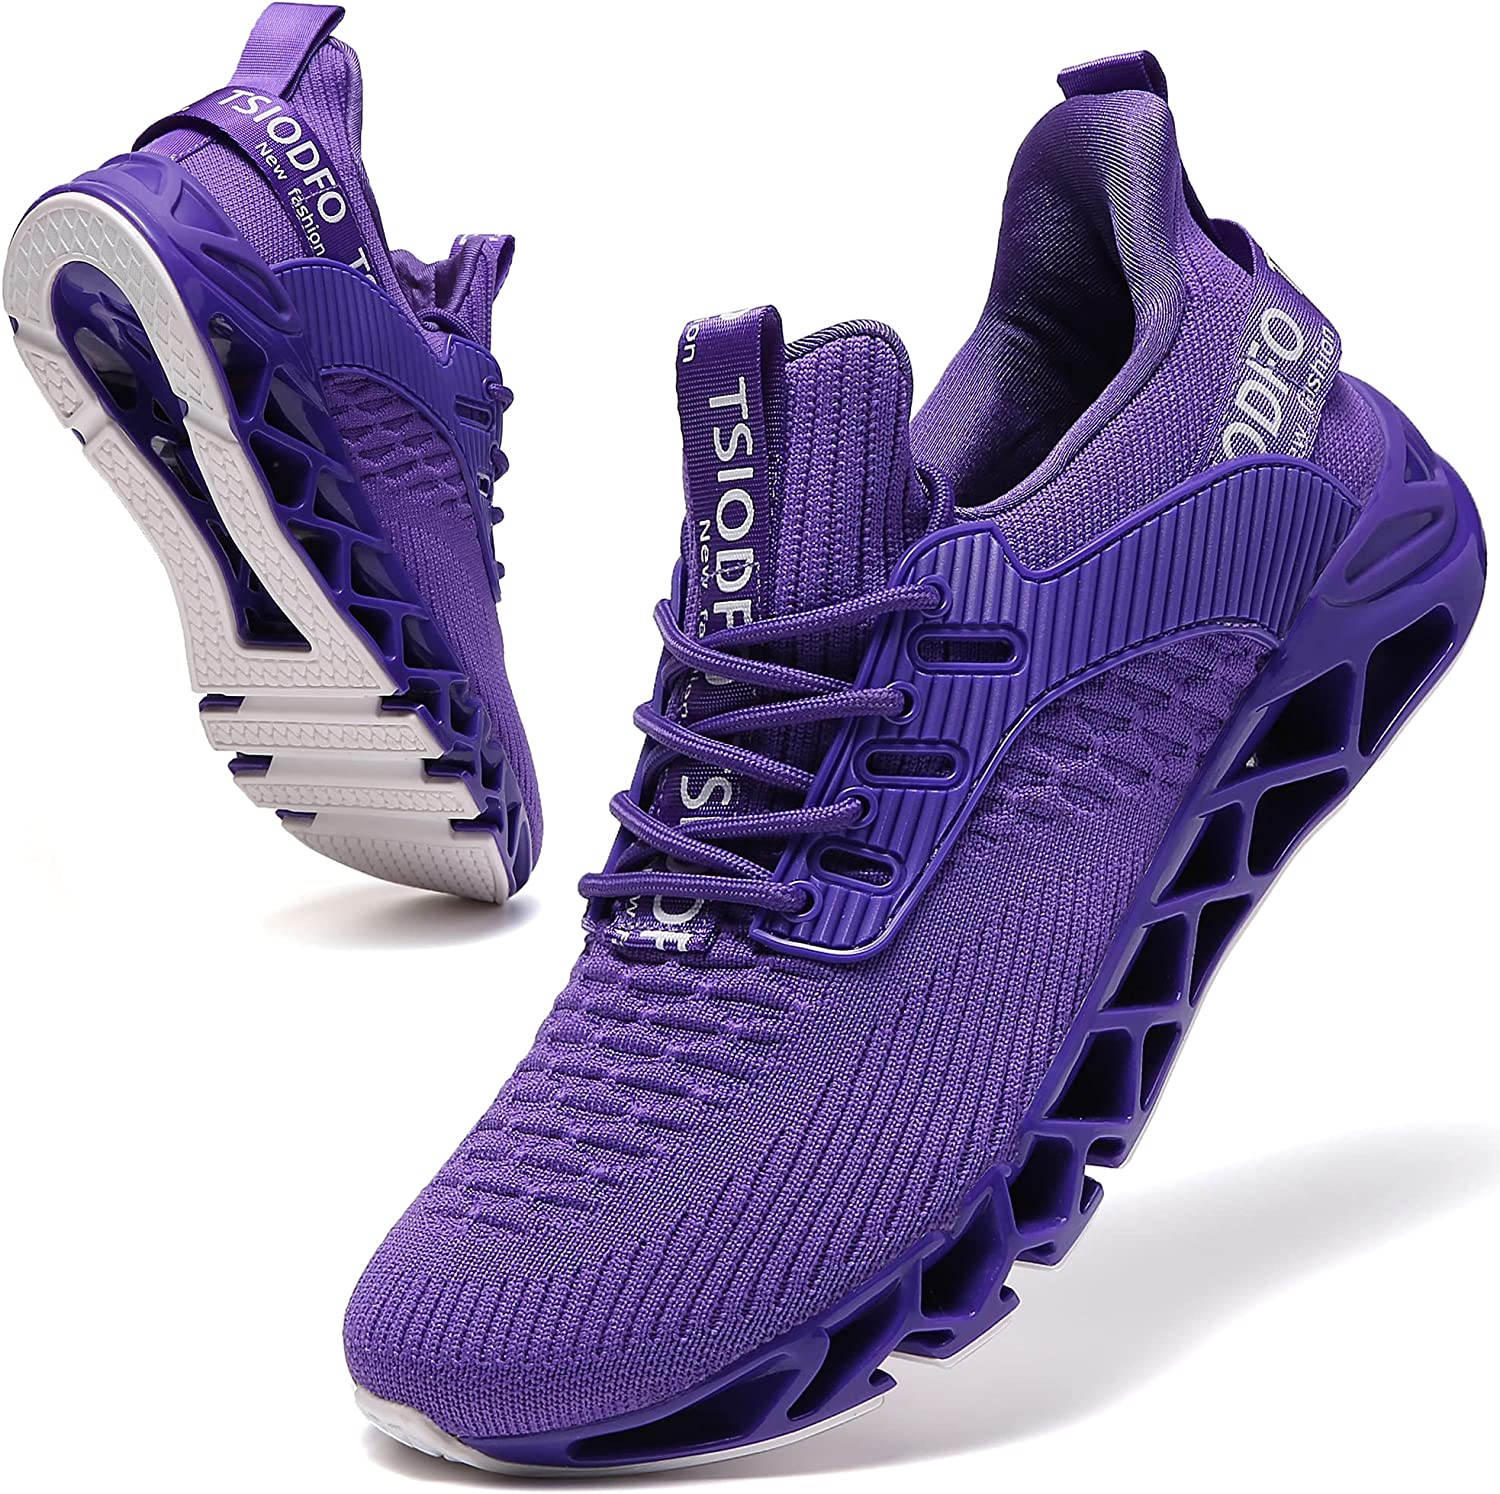 Max 82% OFF SKDOIUL Men Sport Running Shoes Popular Fa Trail Runners Breathable Mesh